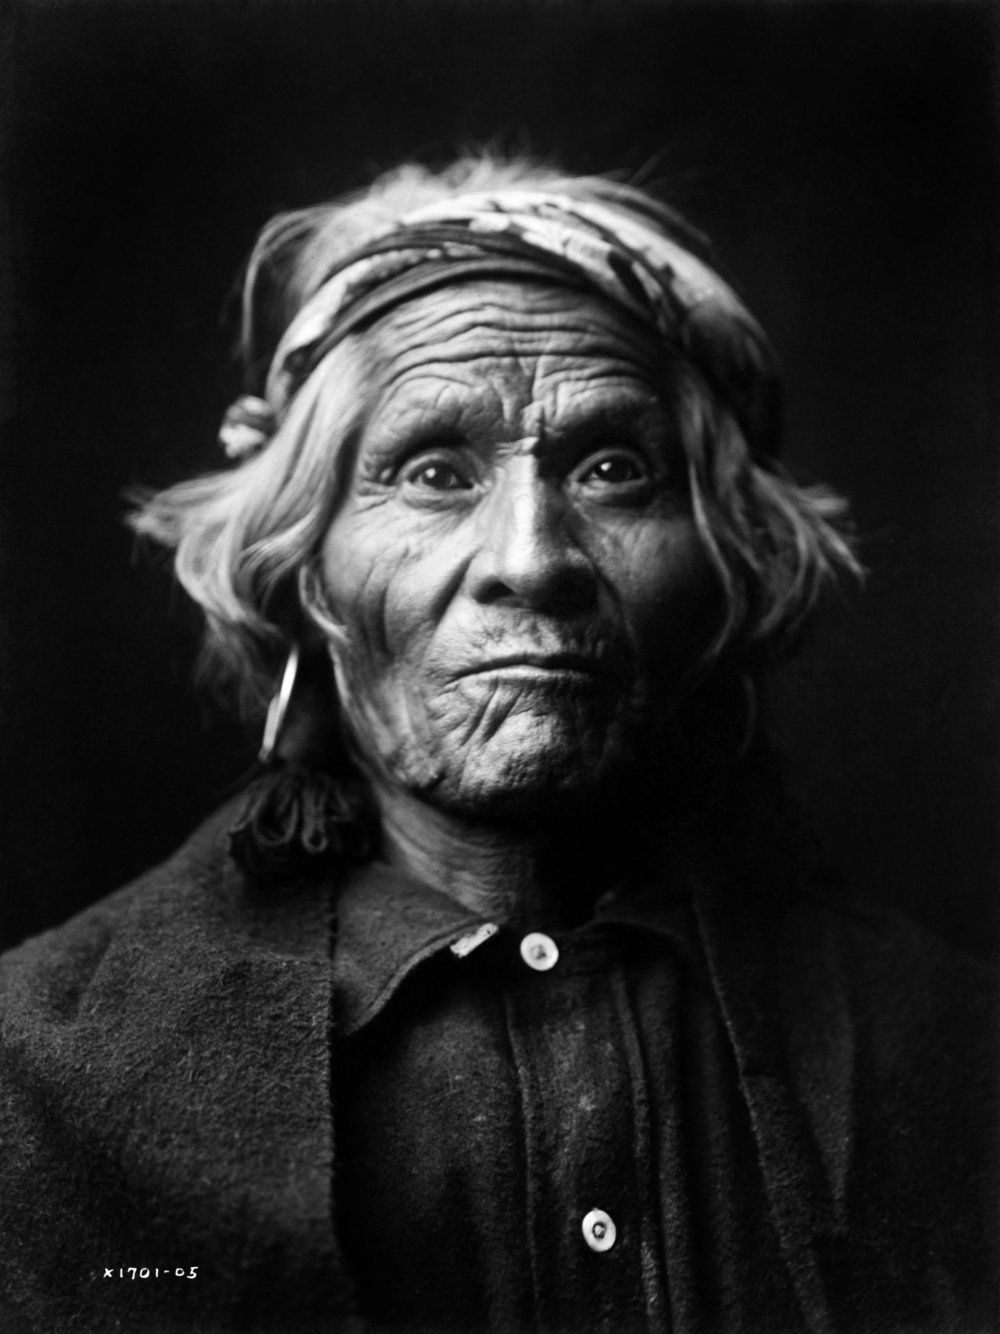 """Wyemah, a Taos-speaking Pueblo person"", 1905.  ©EDWARD S. CURTIS/LIBRARY OF CONGRESS"